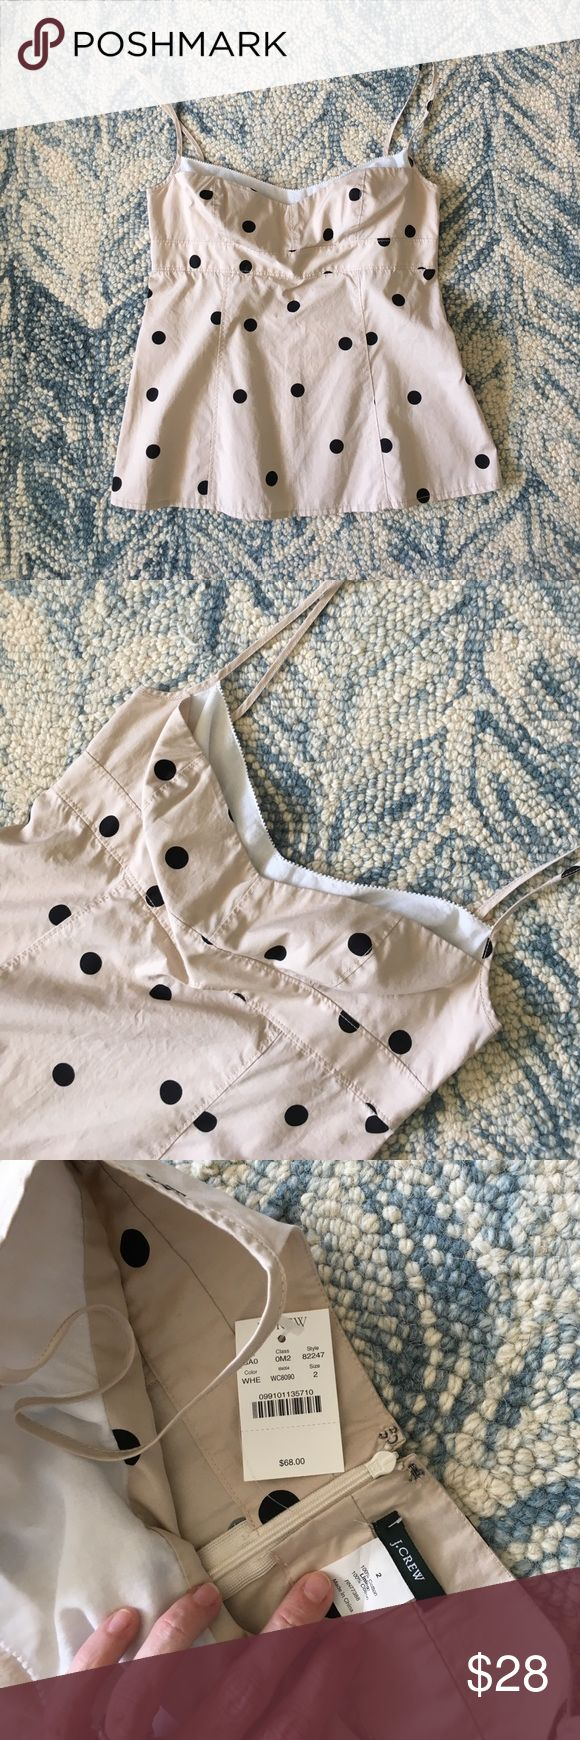 Polka Dot Cami Top by J.Crew Fresh and crisp 100% cotton scrappy tank. NWT! Lovely and unworn - needs to find a loving new owner! Very fitted, back zip. J. Crew Tops Tank Tops